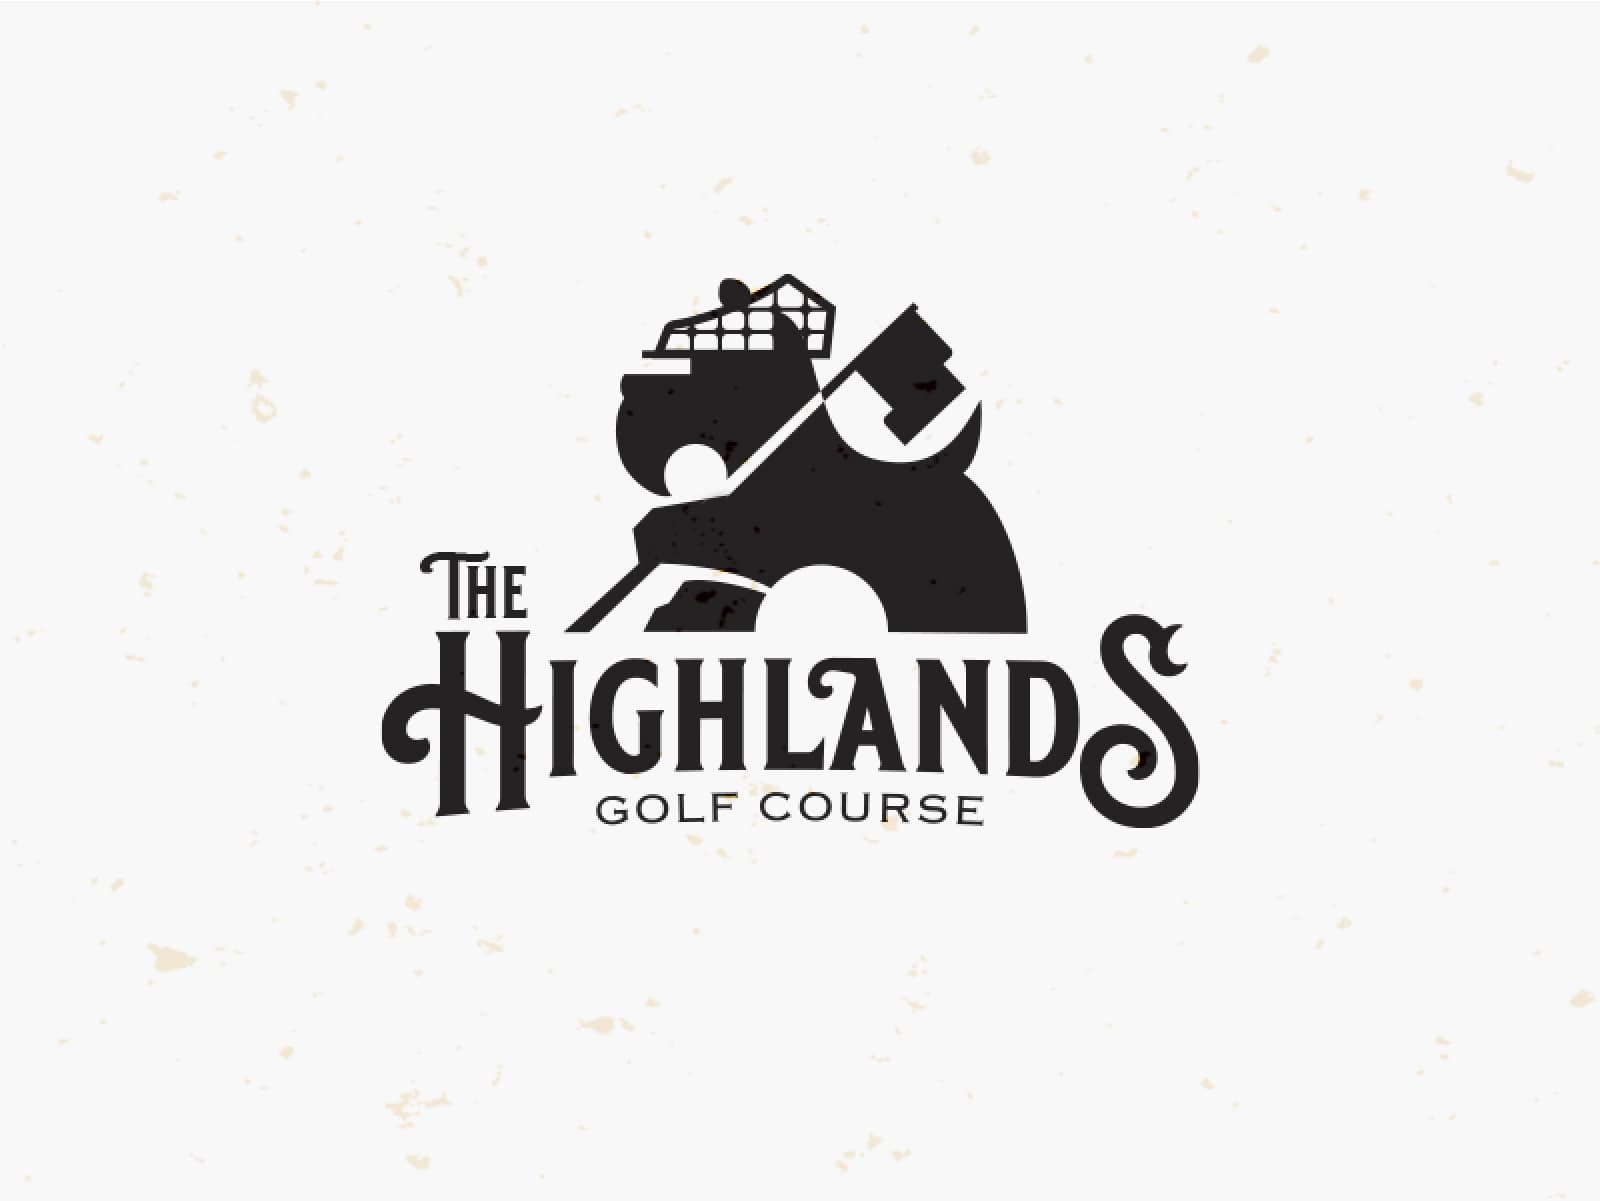 The Highlands - Golf Course by Mike Bruner